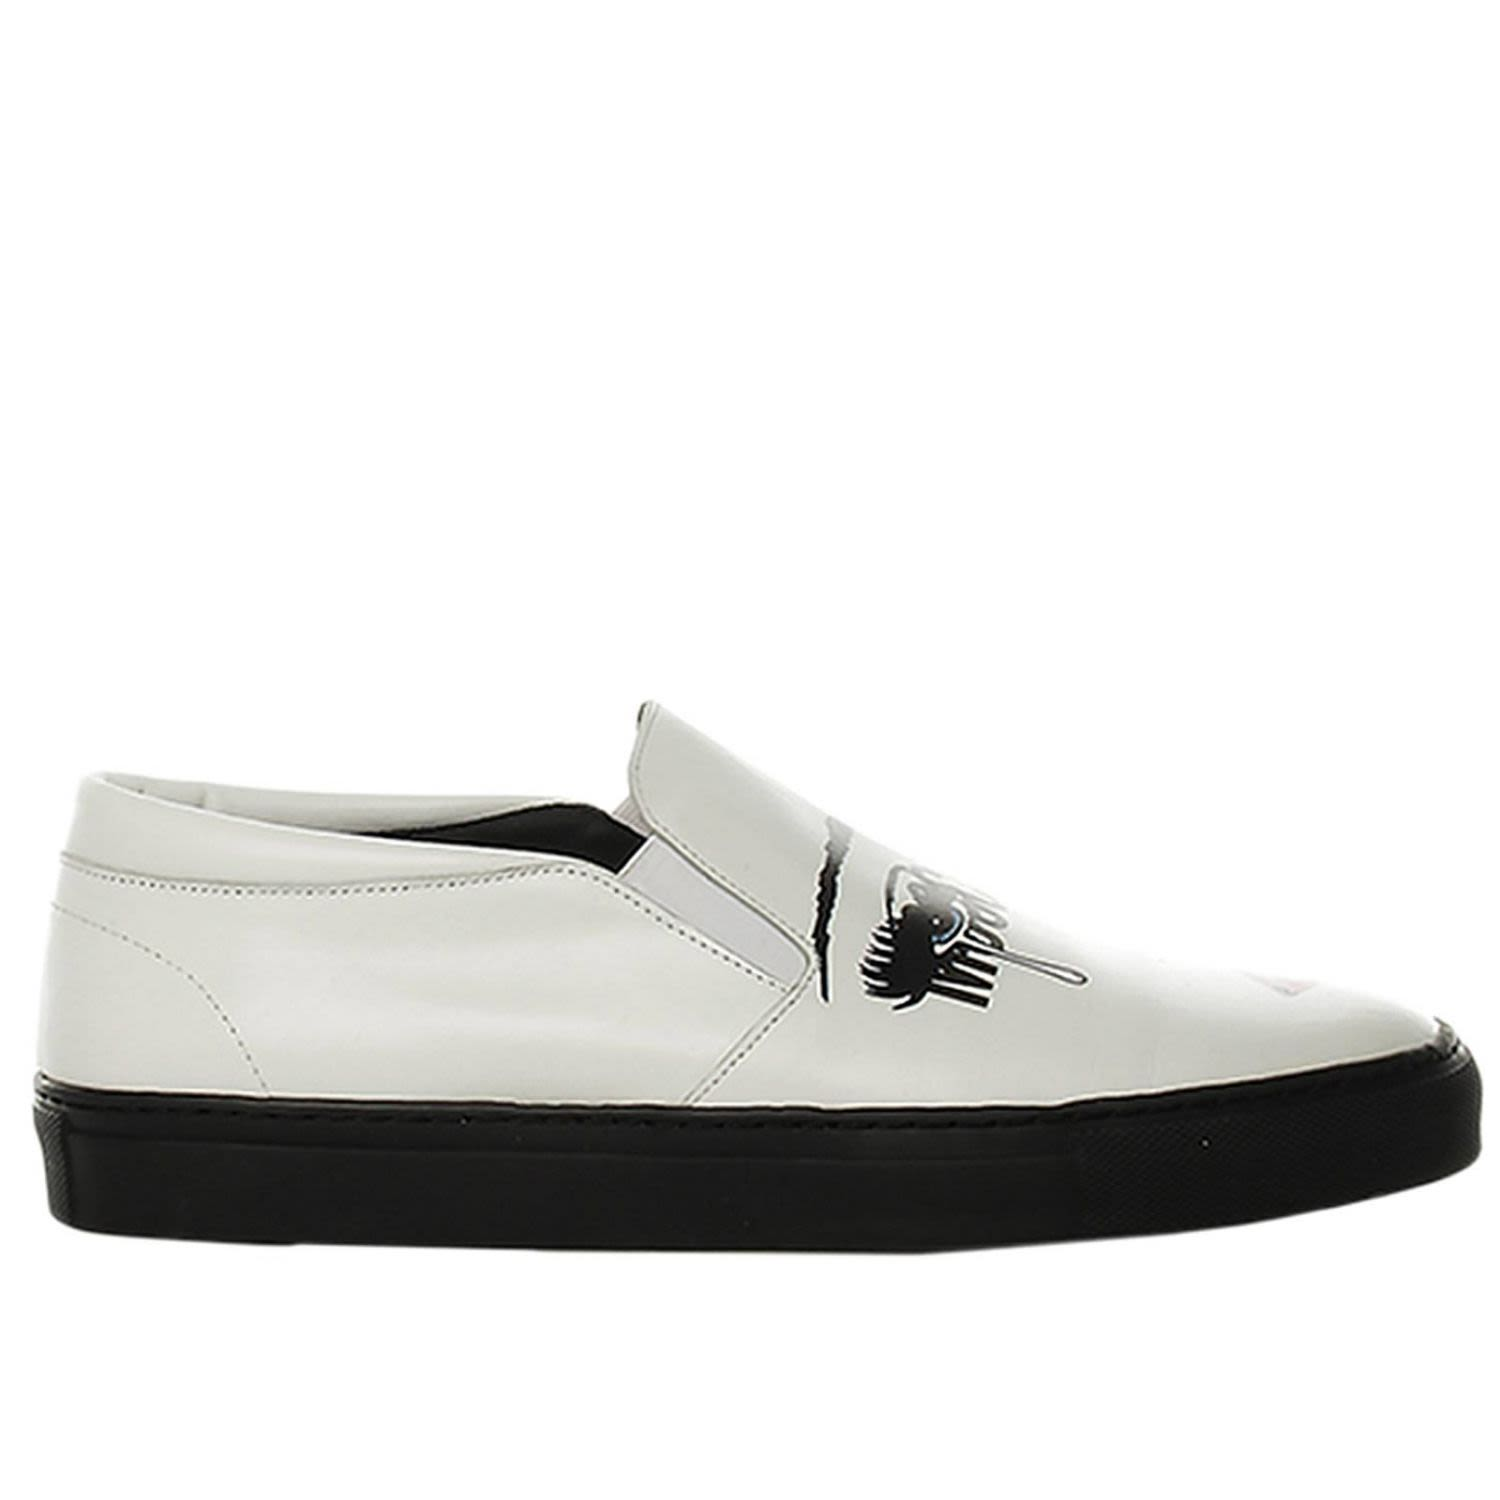 Moschino Couture Sneakers Sneakers Slip On Moschinoeyes Capsule Collection In Real Leather With Mosc